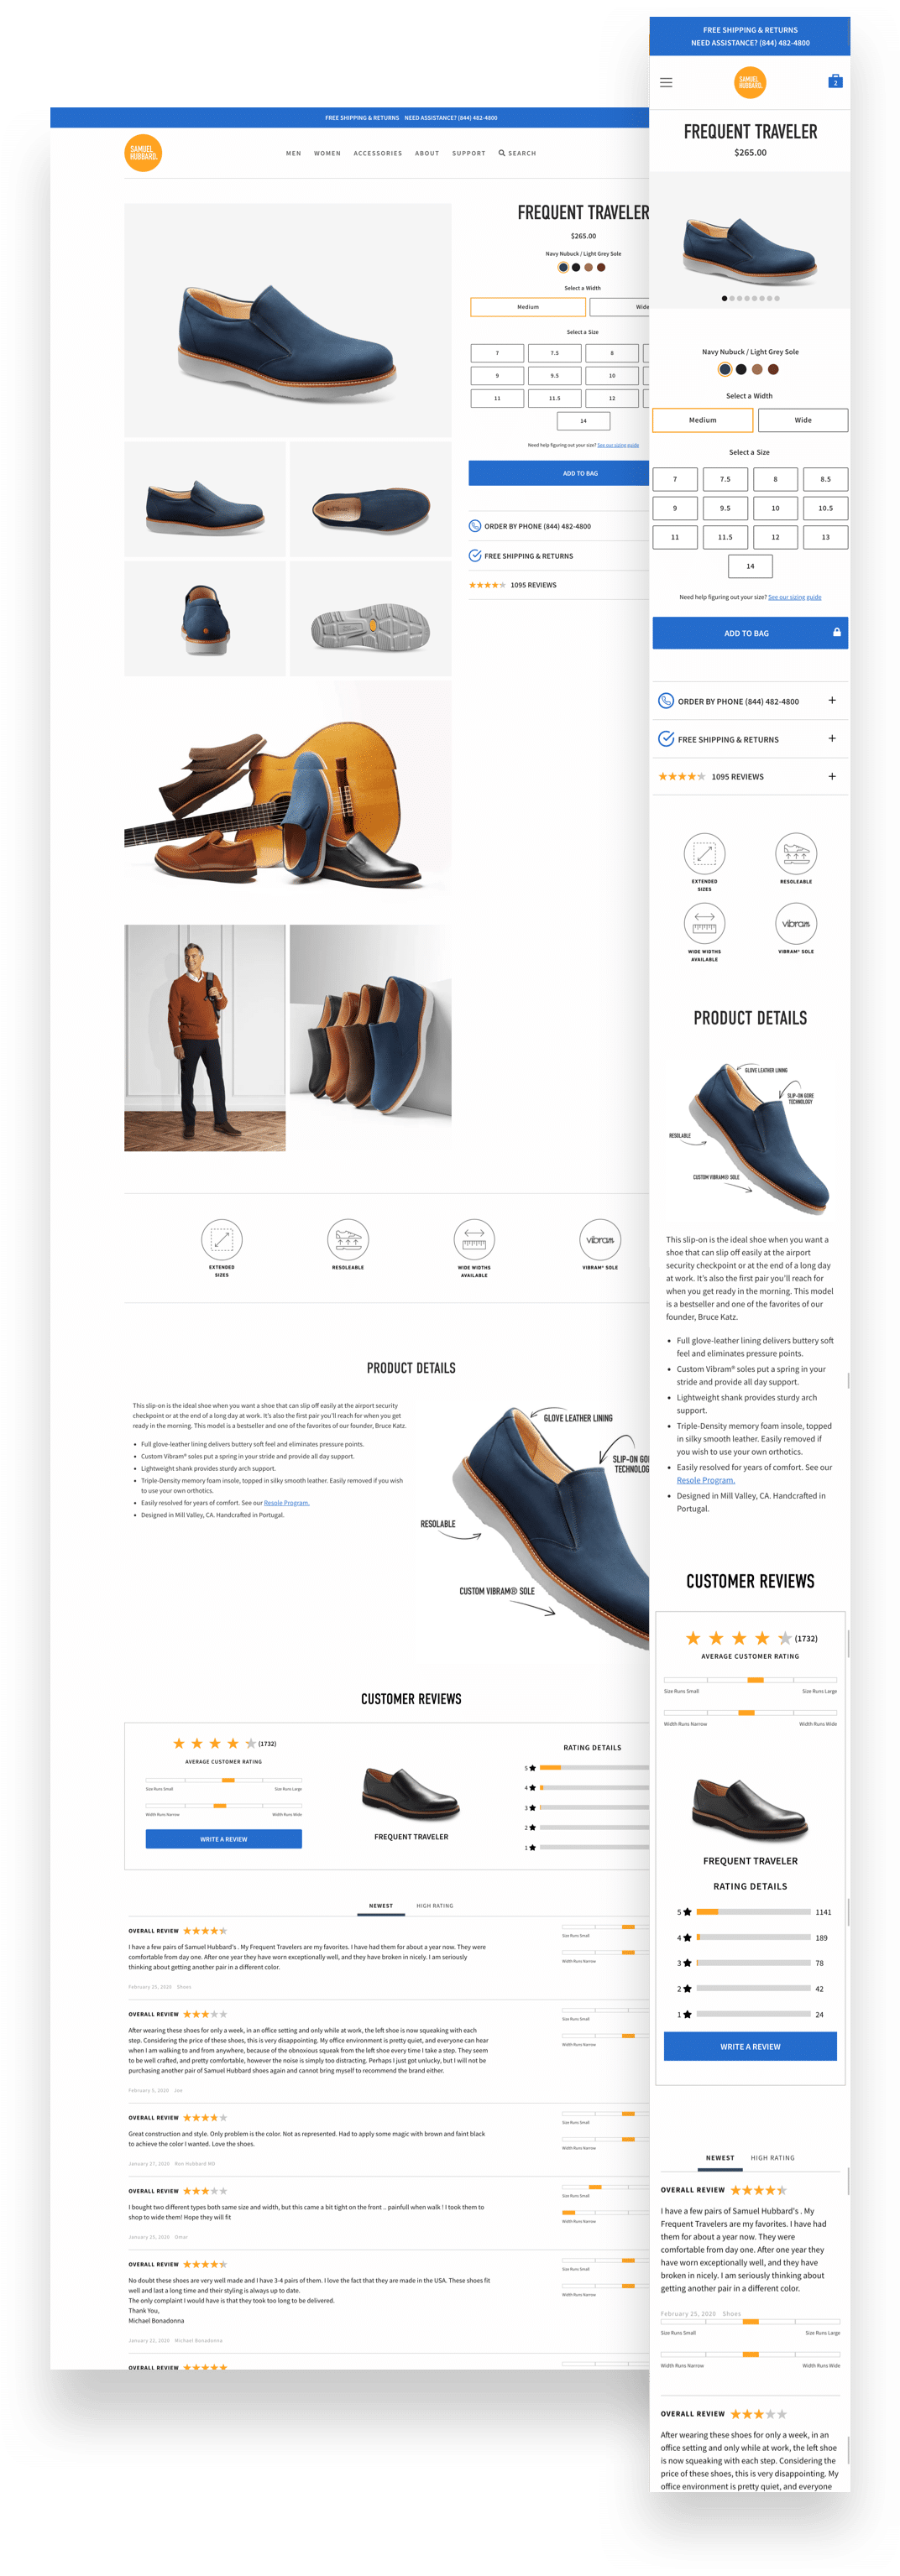 Samuel Hubbard Shoes - The Solution Image